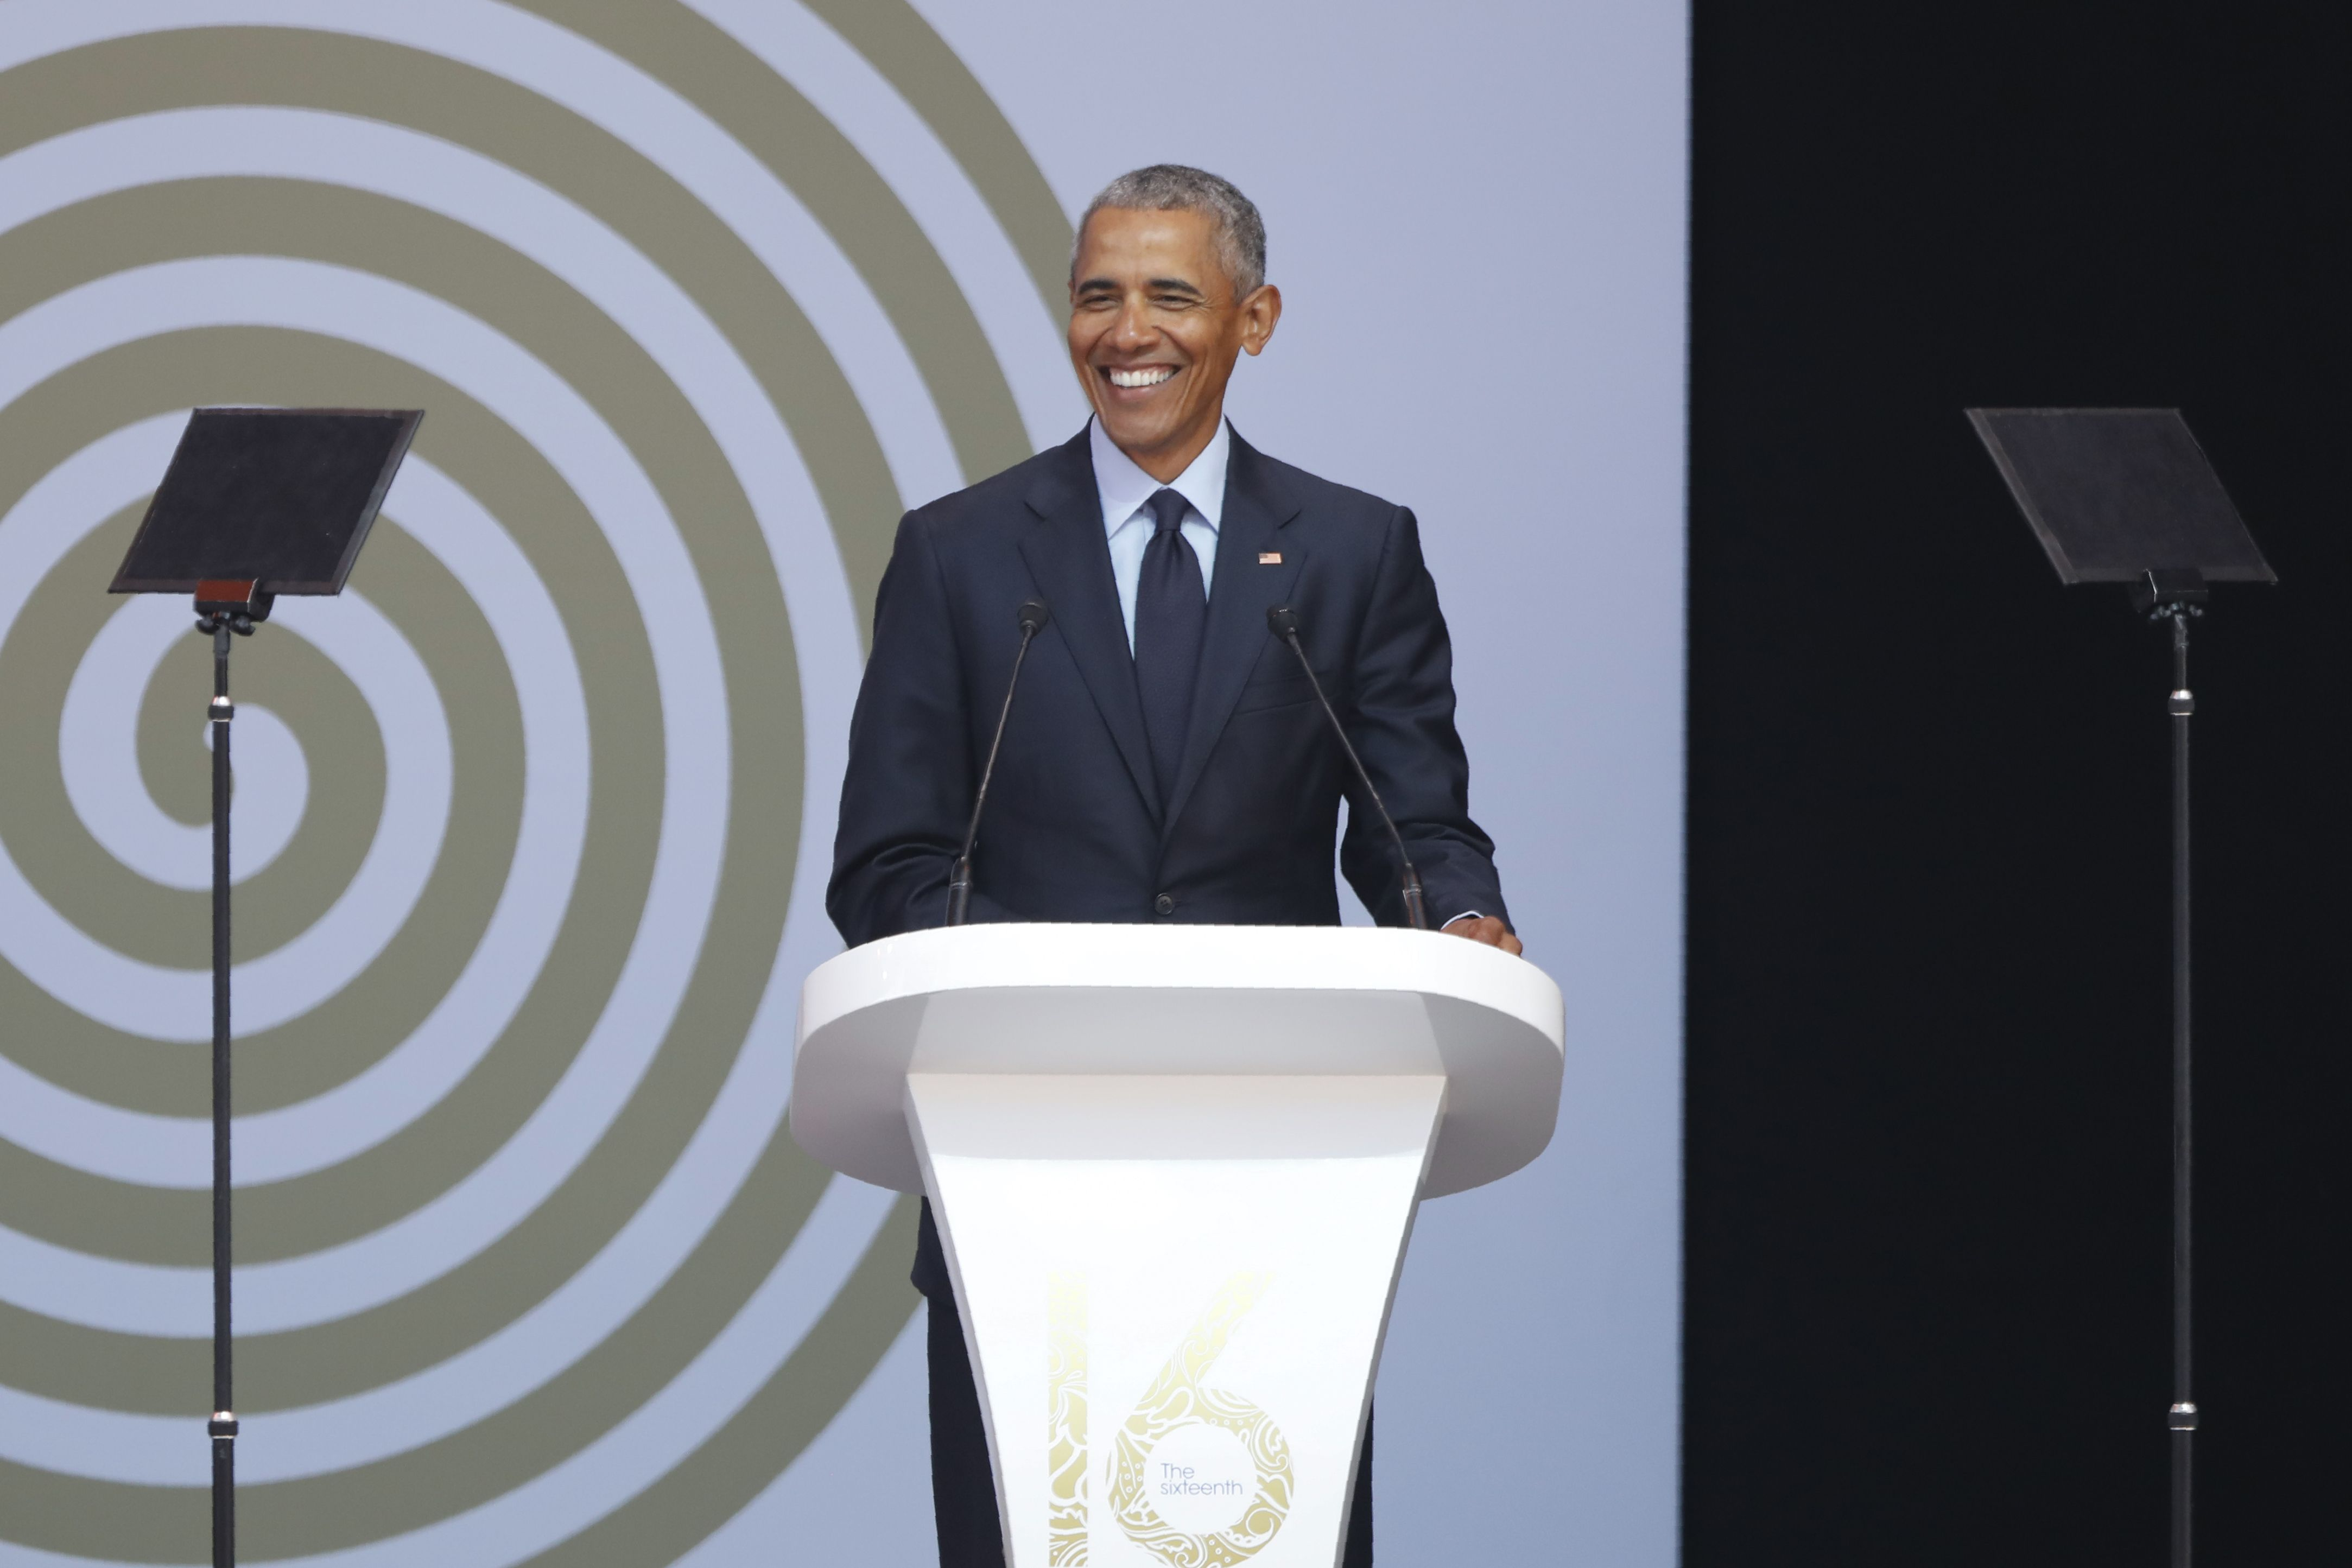 Barack Obama speaks during the 2018 Nelson Mandela Annual Lecture at the Wanderers cricket stadium in Johannesburg on July 17, 2018.